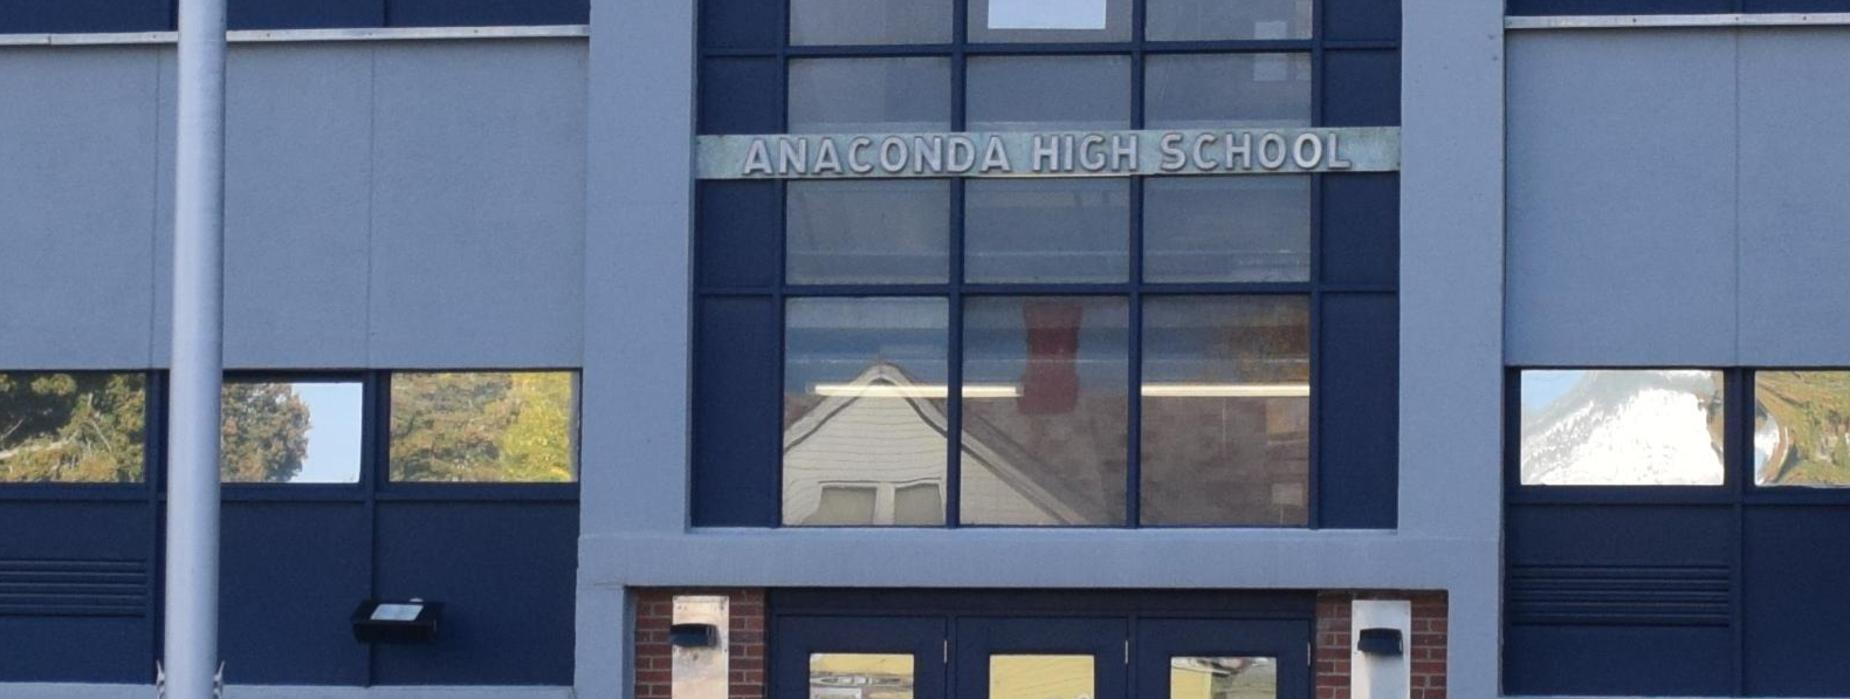 Anaconda Junior/Senior High School